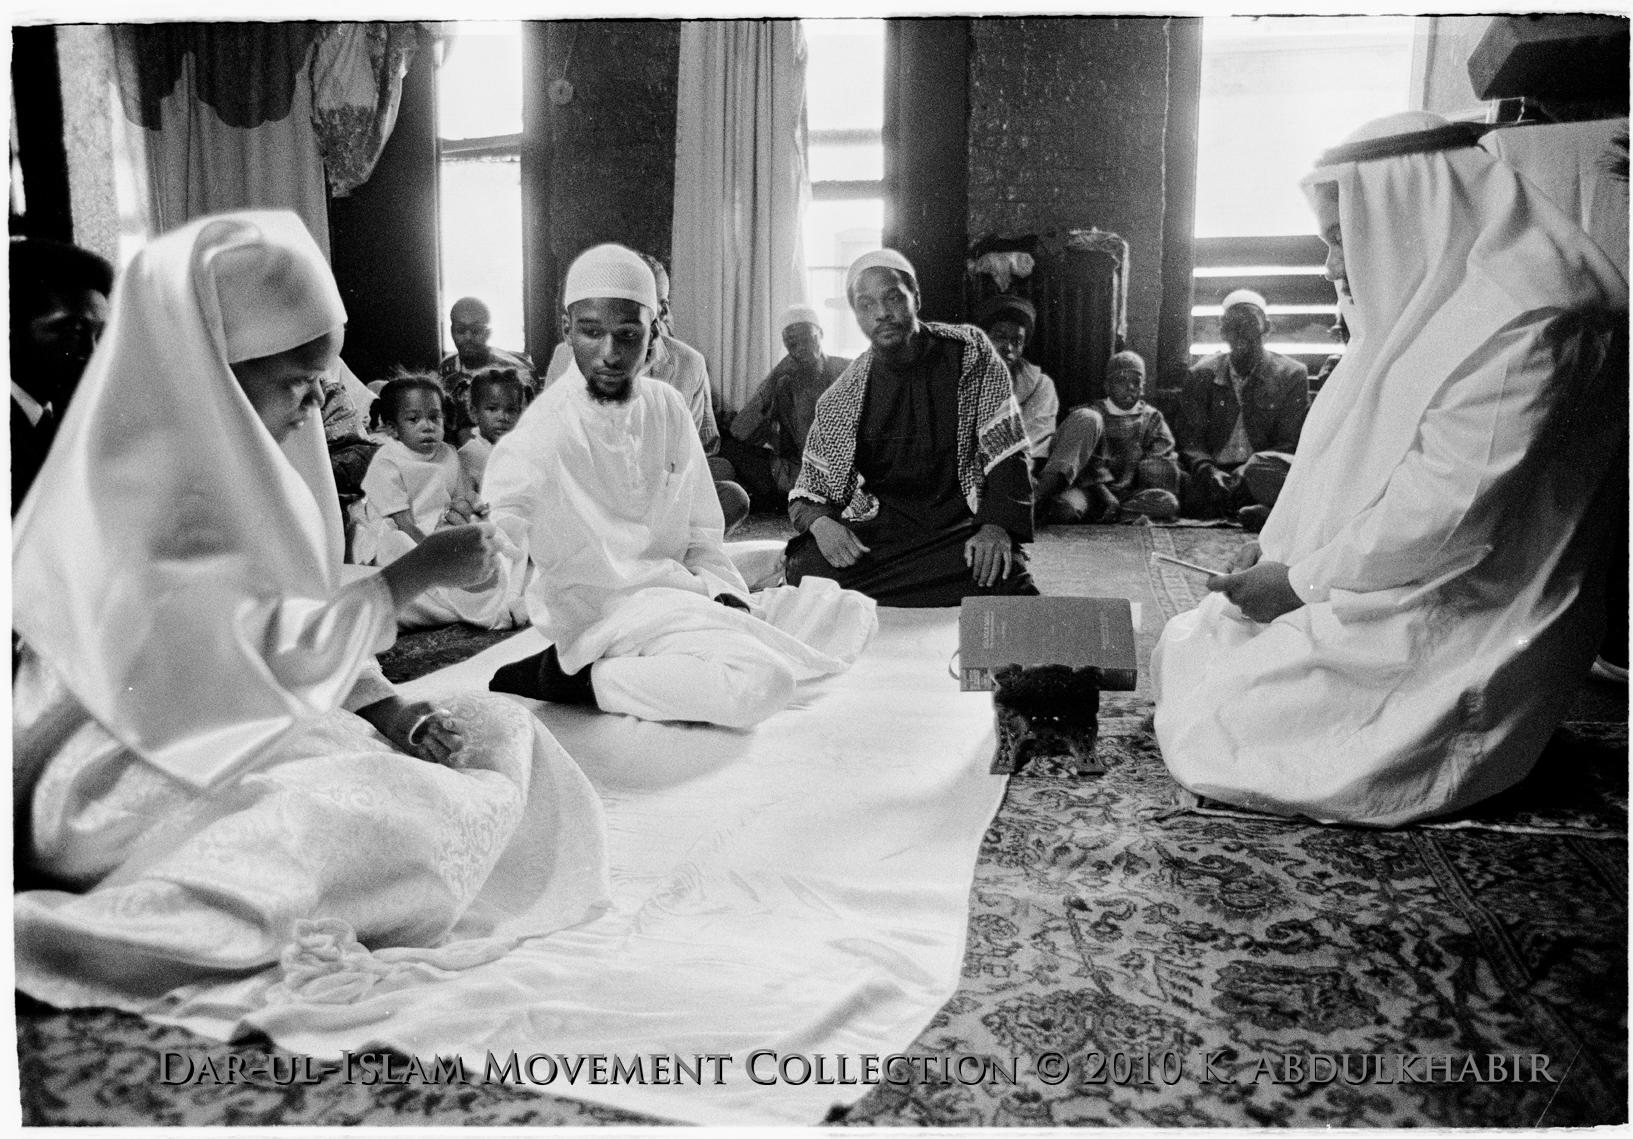 This wedding photo taken at Yasin Masjid in 1971 by Dar ul Islam Movement photographer Khalil AbdulKhabir at the ceremony of Mahmoud Andrade Ibrahim and Karima Amatullah, aided in establishing Islam as a cultural reality within the imagination of the larger African American community.